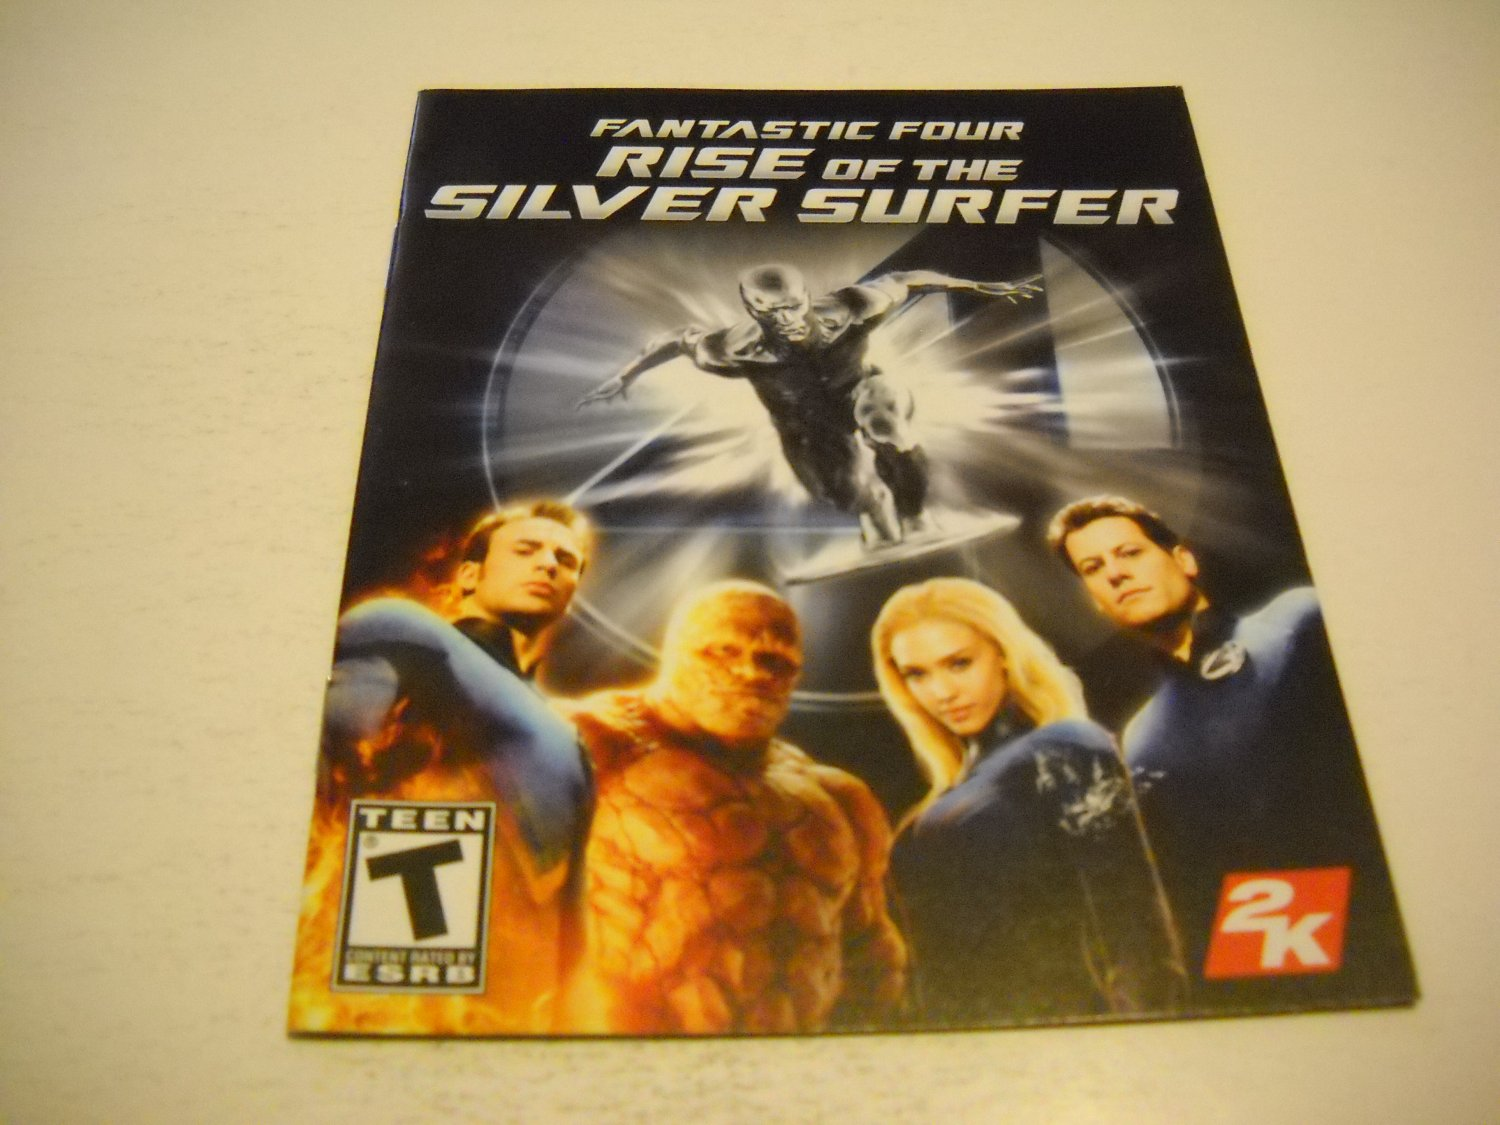 Manual ONLY ~  for Fantastic Four Rise of the Silver Surfer , PS3